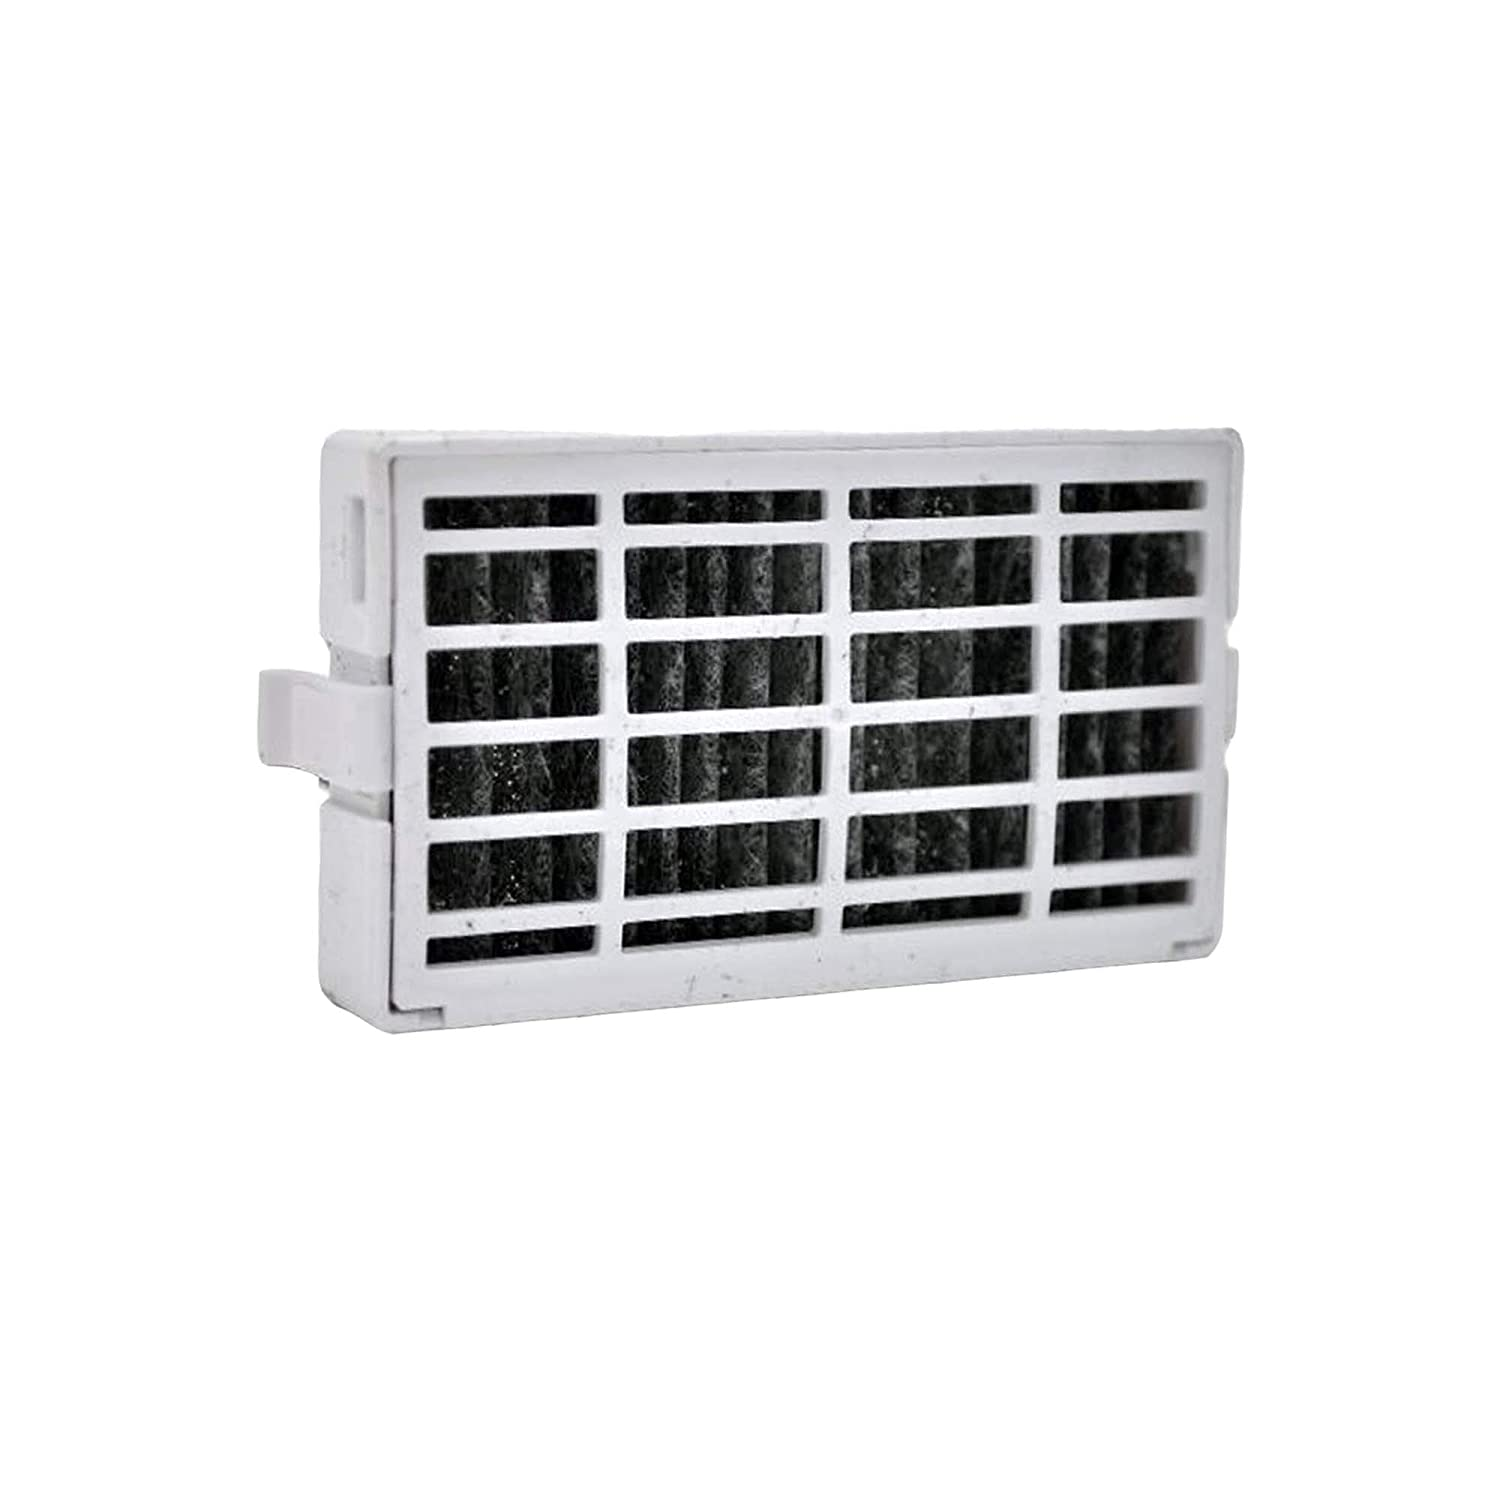 Whirlpool Air1 Refrigerator Air Filter, Compare to Part # W10311524, Designed & Engineered by Crucial Air AX-AY-ABHI-81710